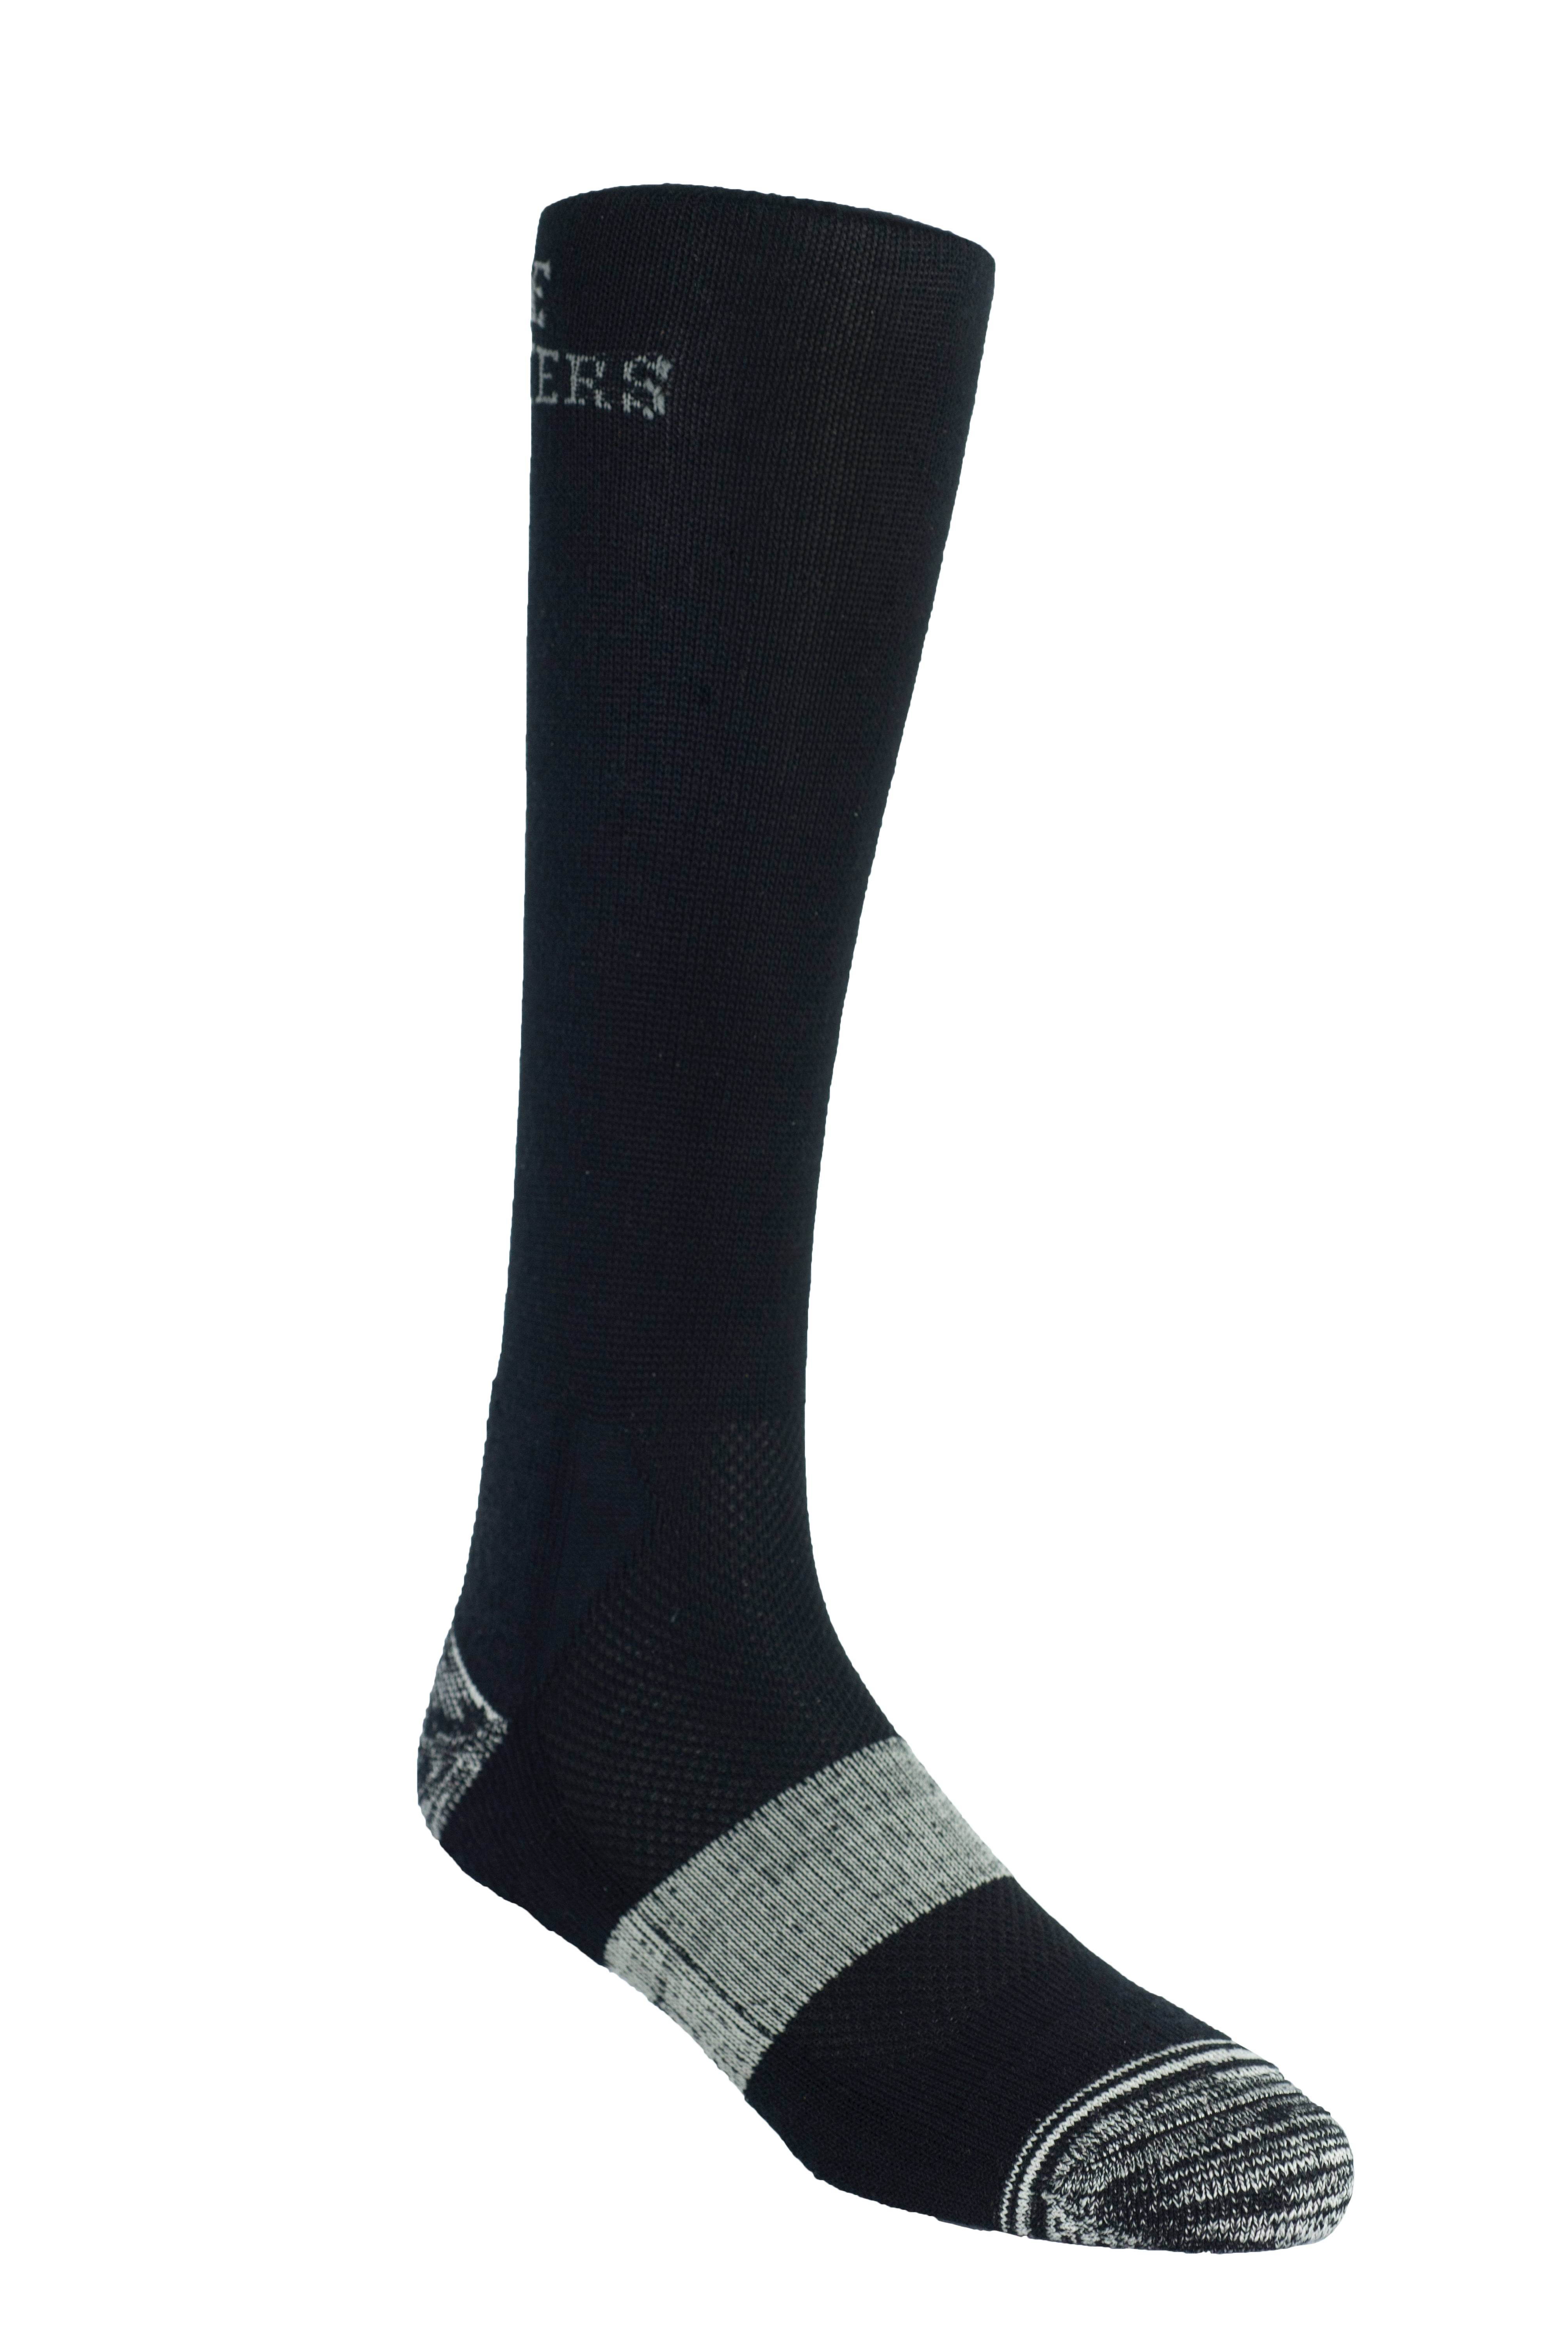 Noble Outfitters The Best Dang Boot Sock- Crew